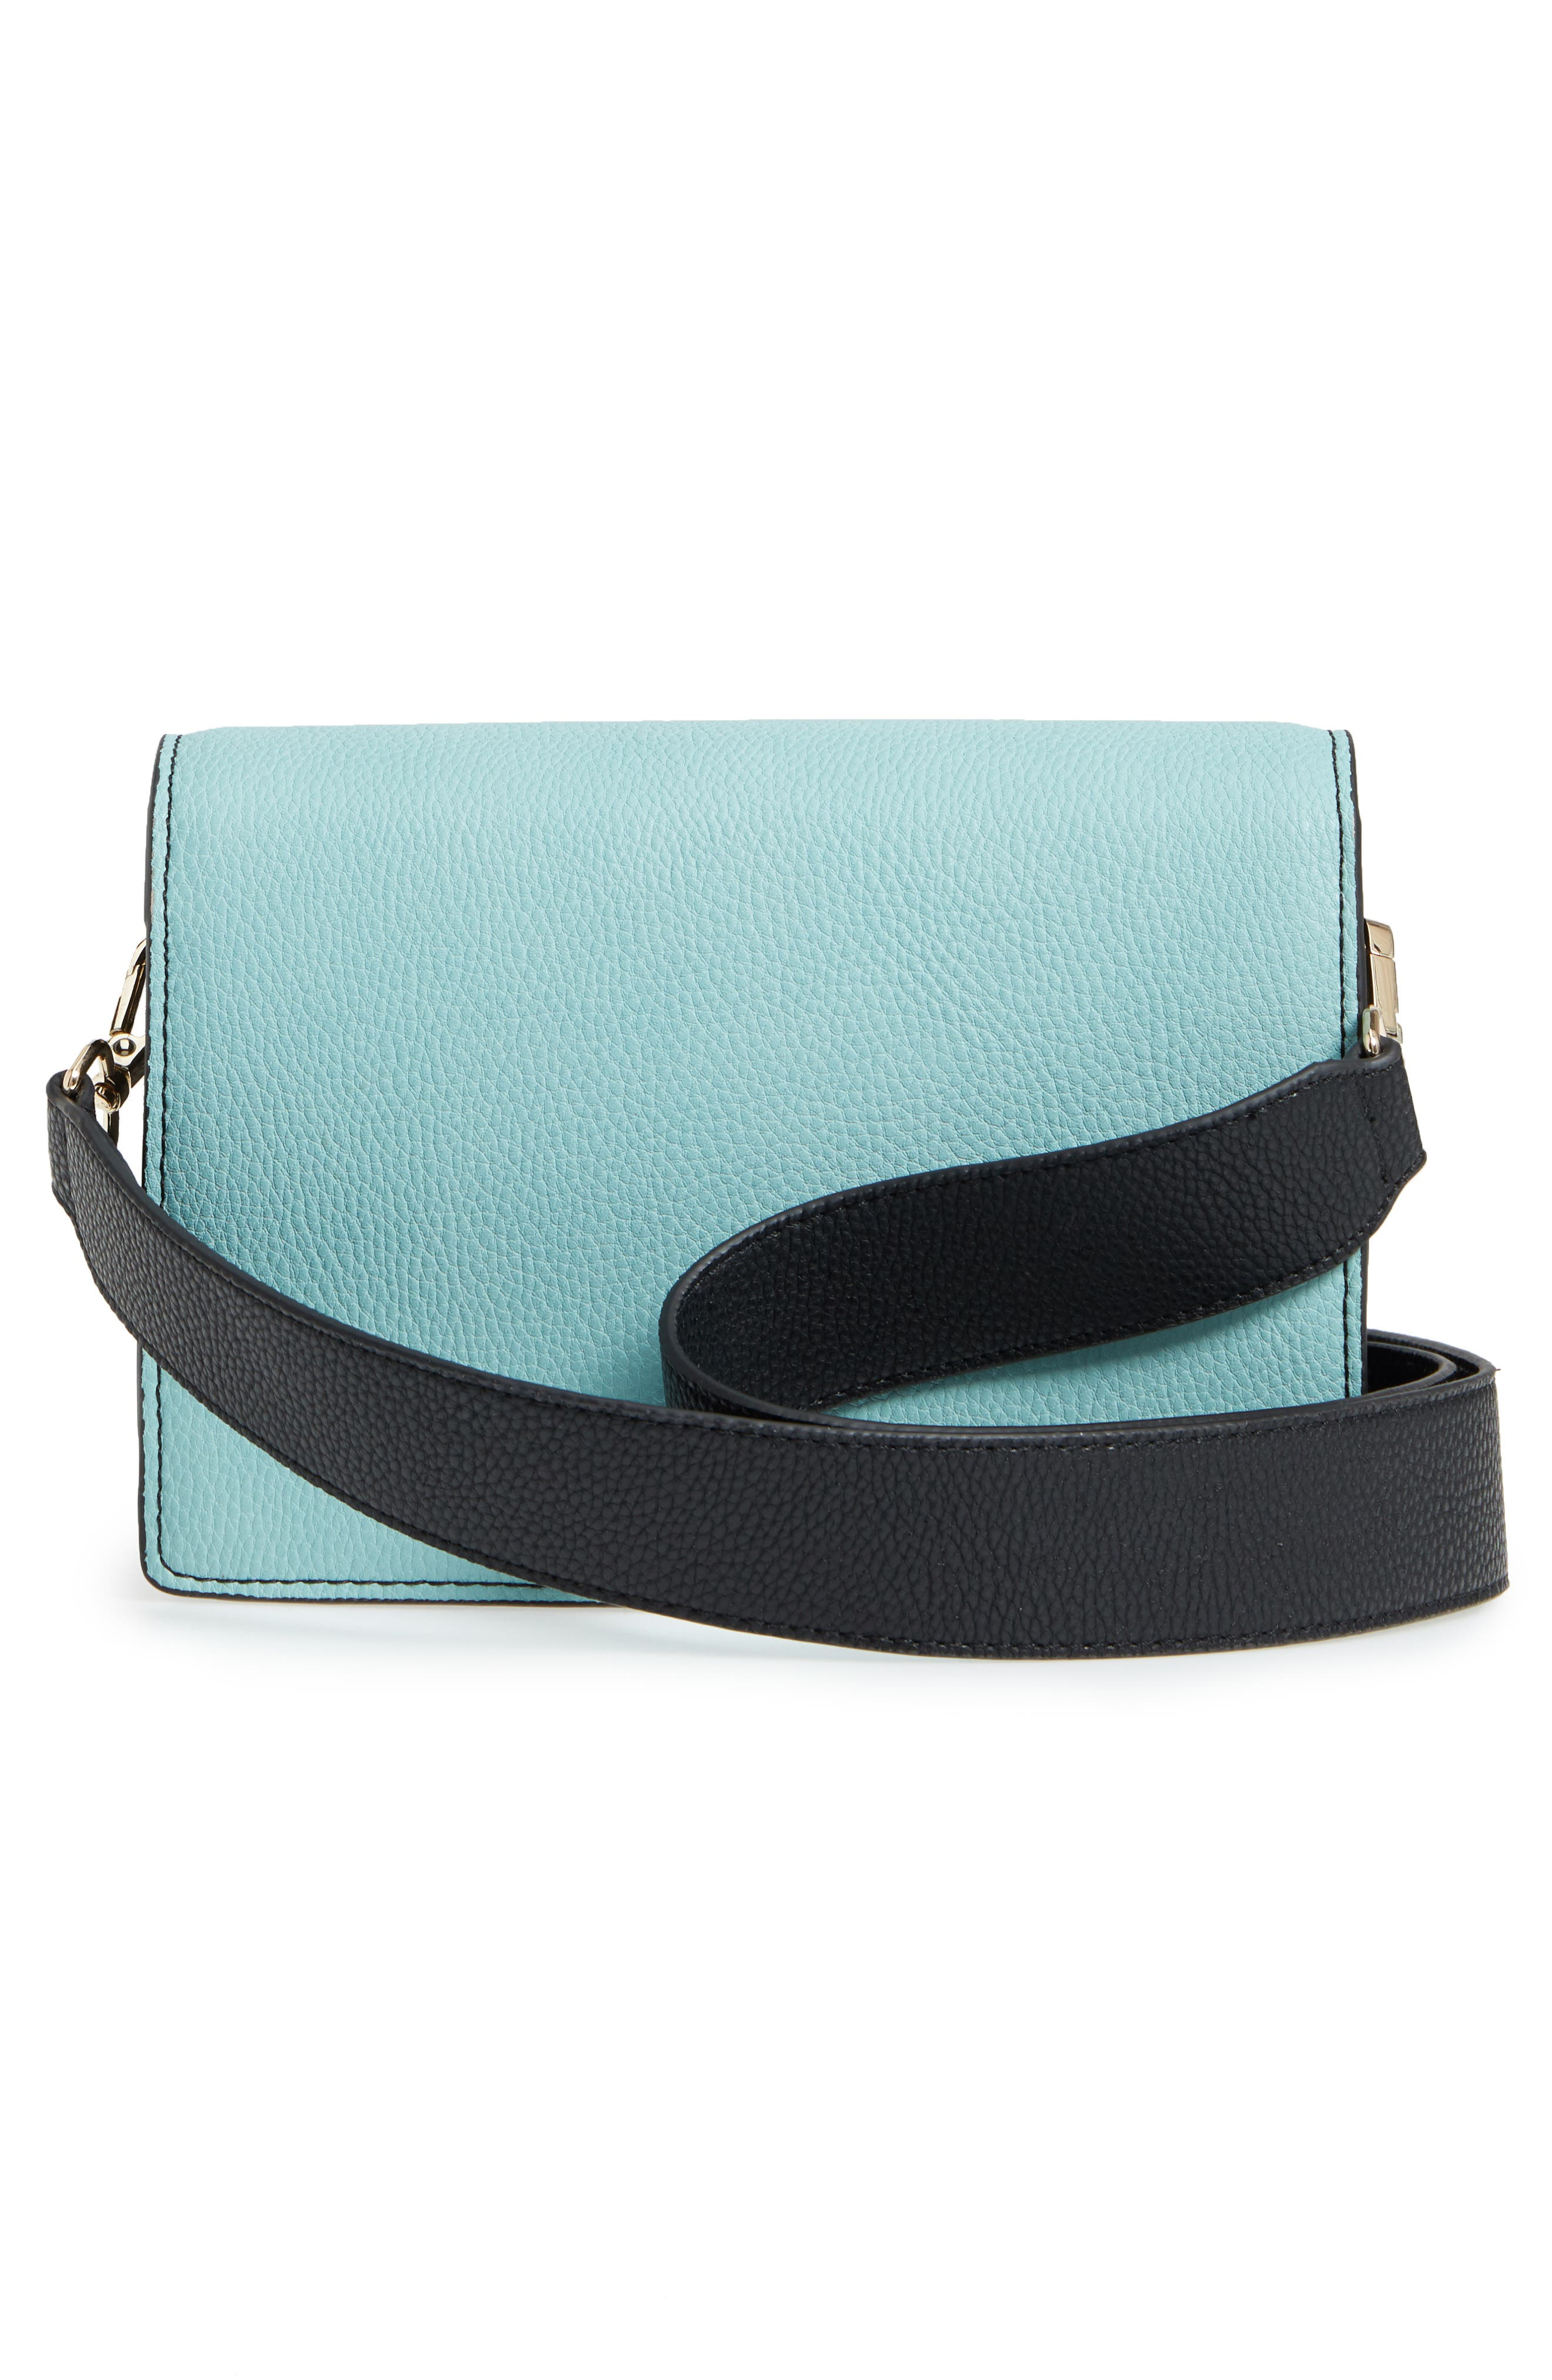 Sari Crossbody Bag,                             Alternate thumbnail 3, color,                             960